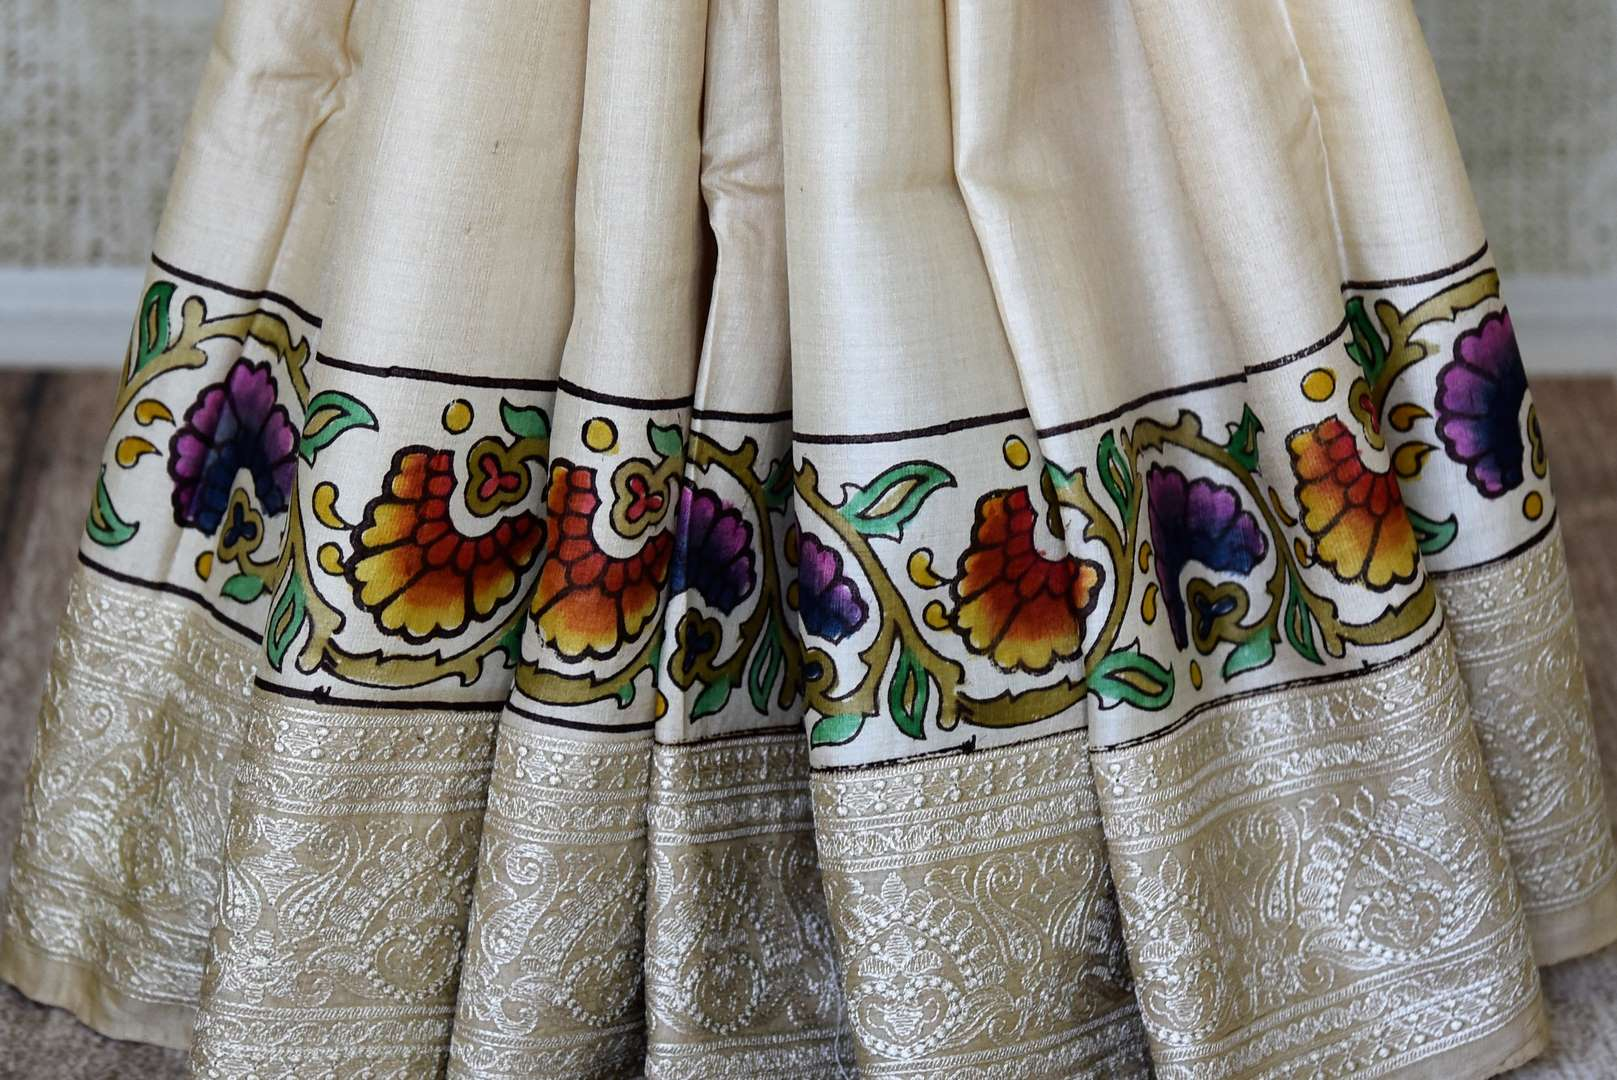 Buy cream tussar silk handprinted and embroidered saree online in USA. Find a splendid collection of Indian designer sarees with blouses in USA at Pure Elegance Indian clothing store. Make a striking appearance on festive occasions by shopping from a range of pure silk saris, Banarasi sarees, embroidered saris from our online store.-pleats